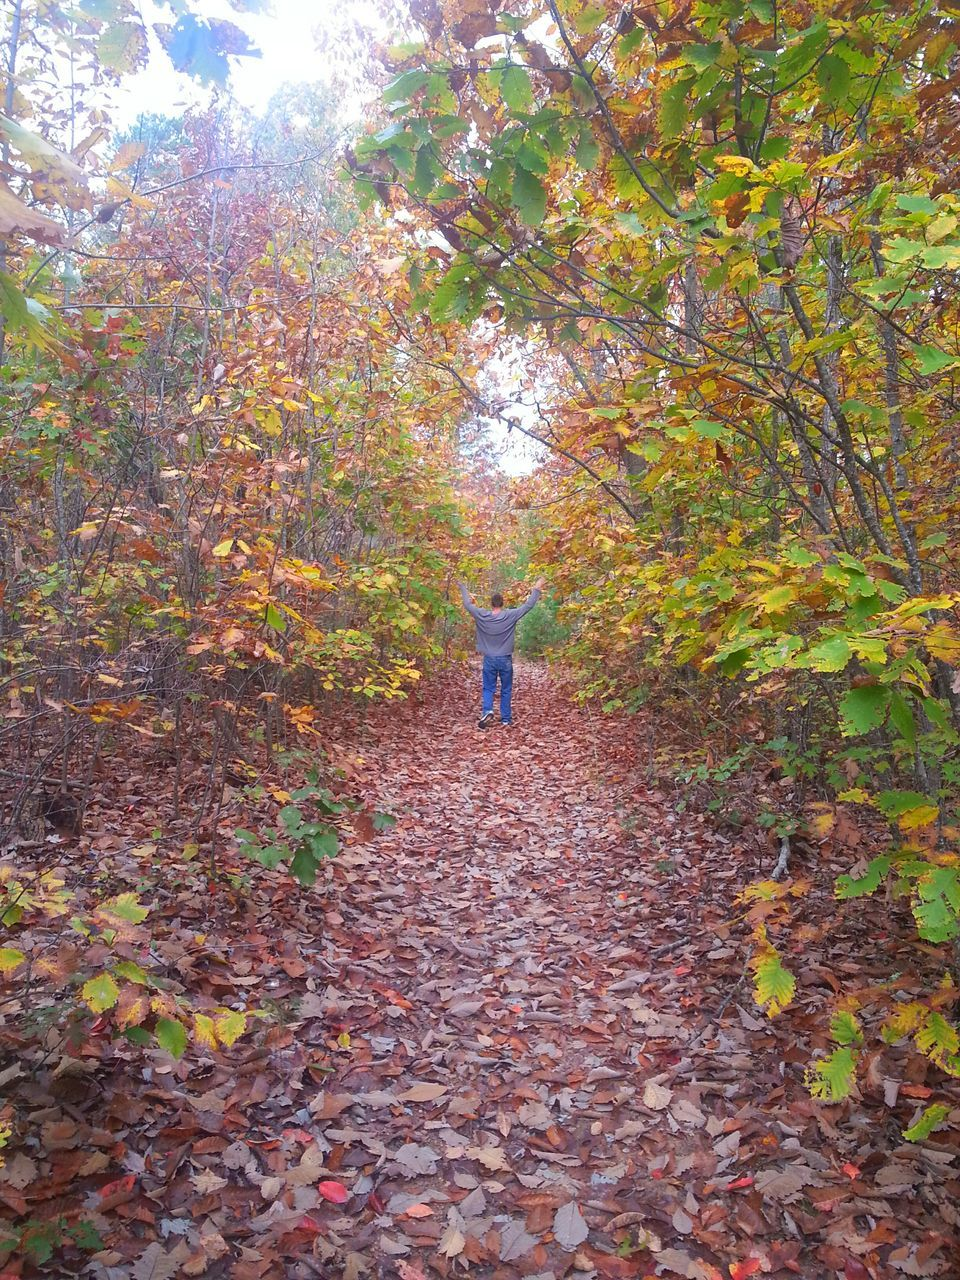 autumn, leaf, change, nature, tree, leaves, beauty in nature, day, full length, fallen, one person, outdoors, branch, tranquility, real people, scenics, forest, growth, maple, energetic, people